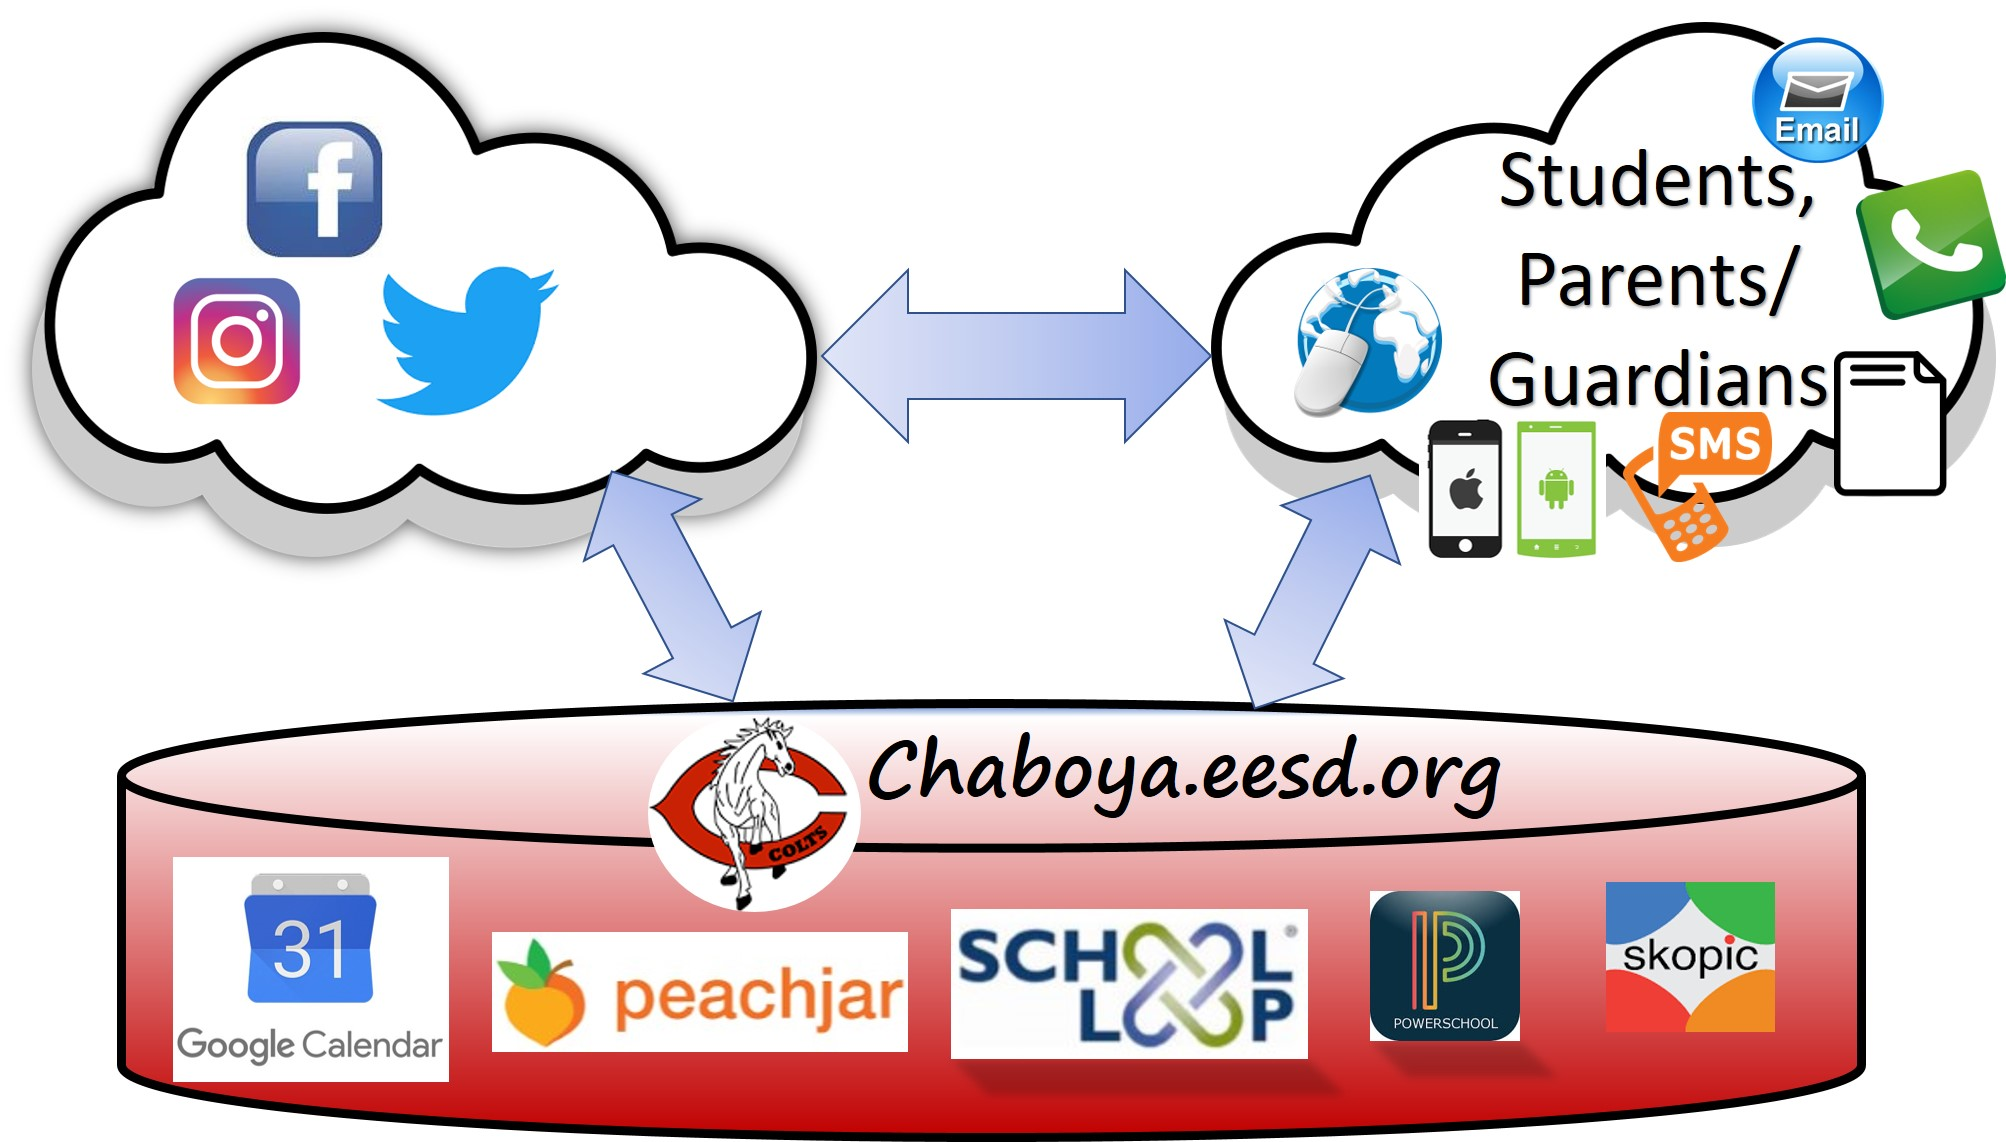 Visual representation of tools used by Chaboya to communicate to students and parents